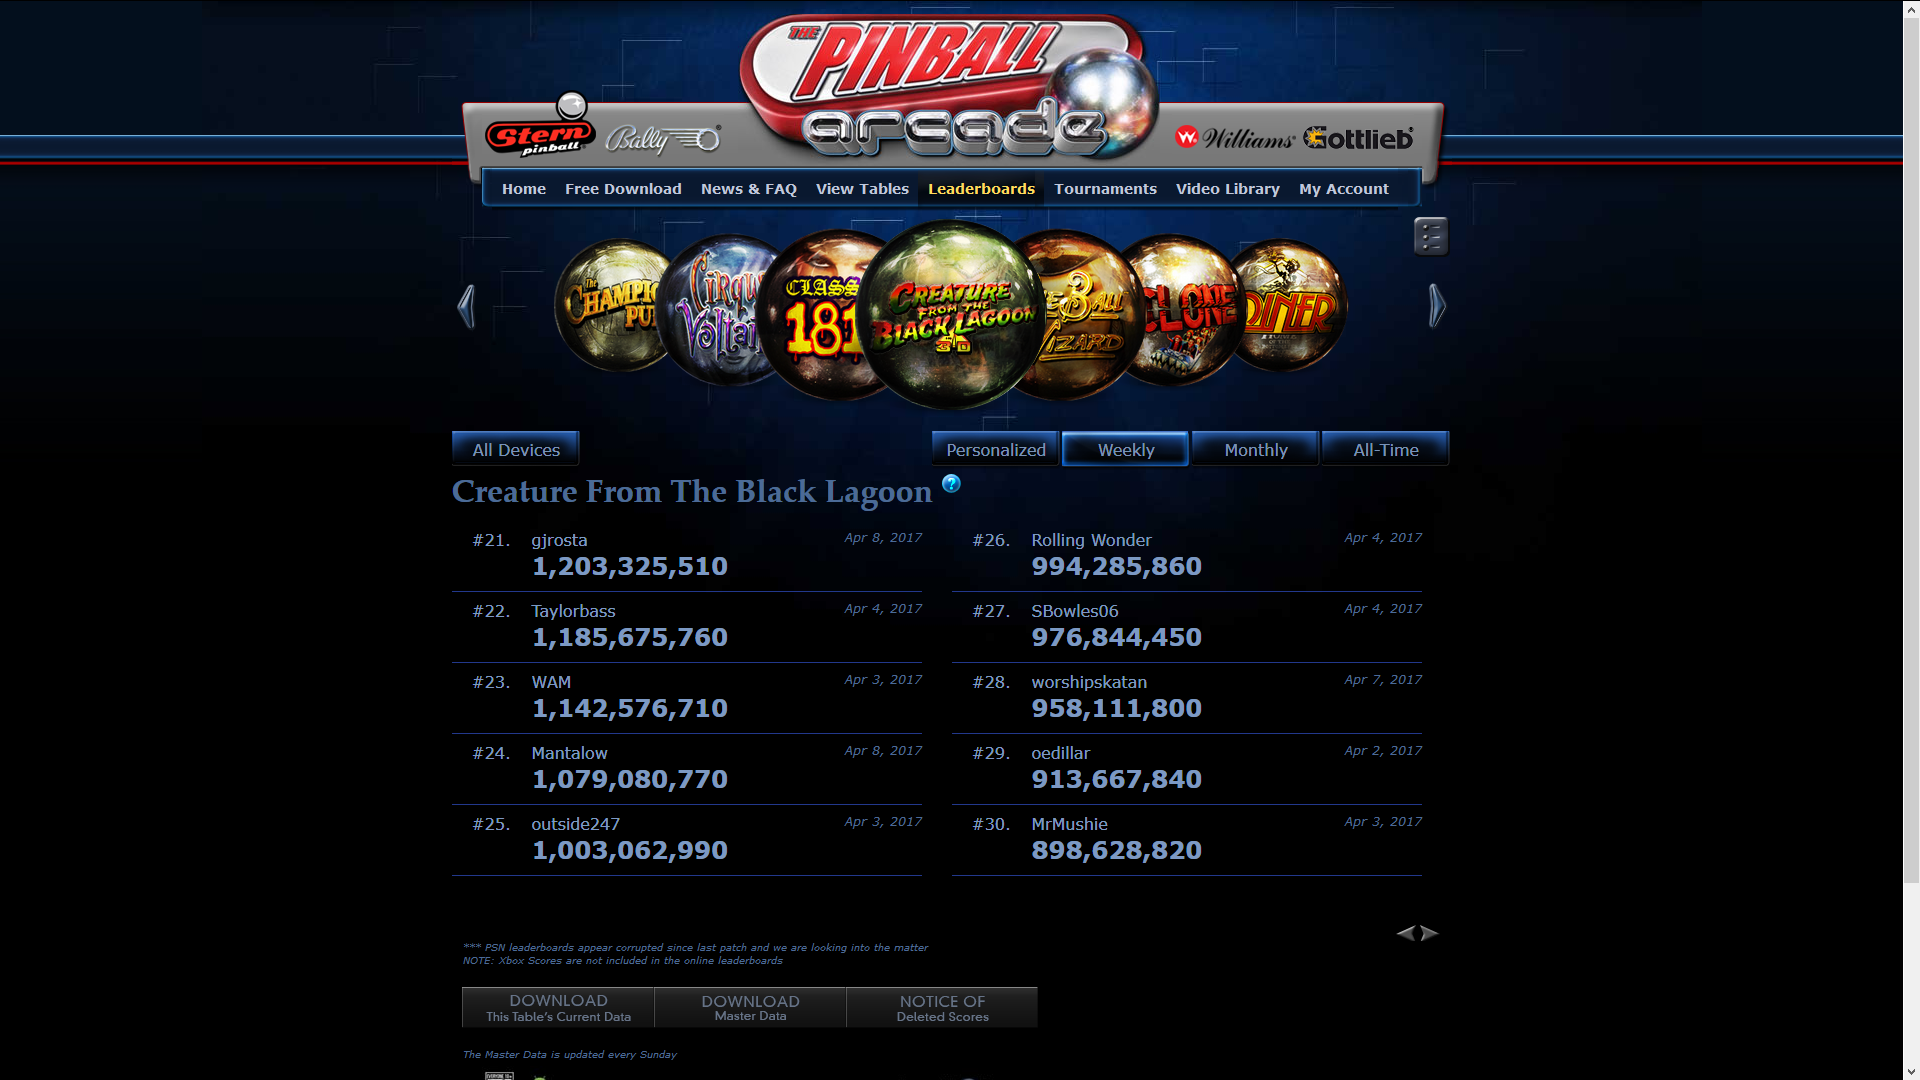 Mantalow: Pinball Arcade: Creature From the Black Lagoon (PC) 1,079,080,770 points on 2017-04-08 11:09:39